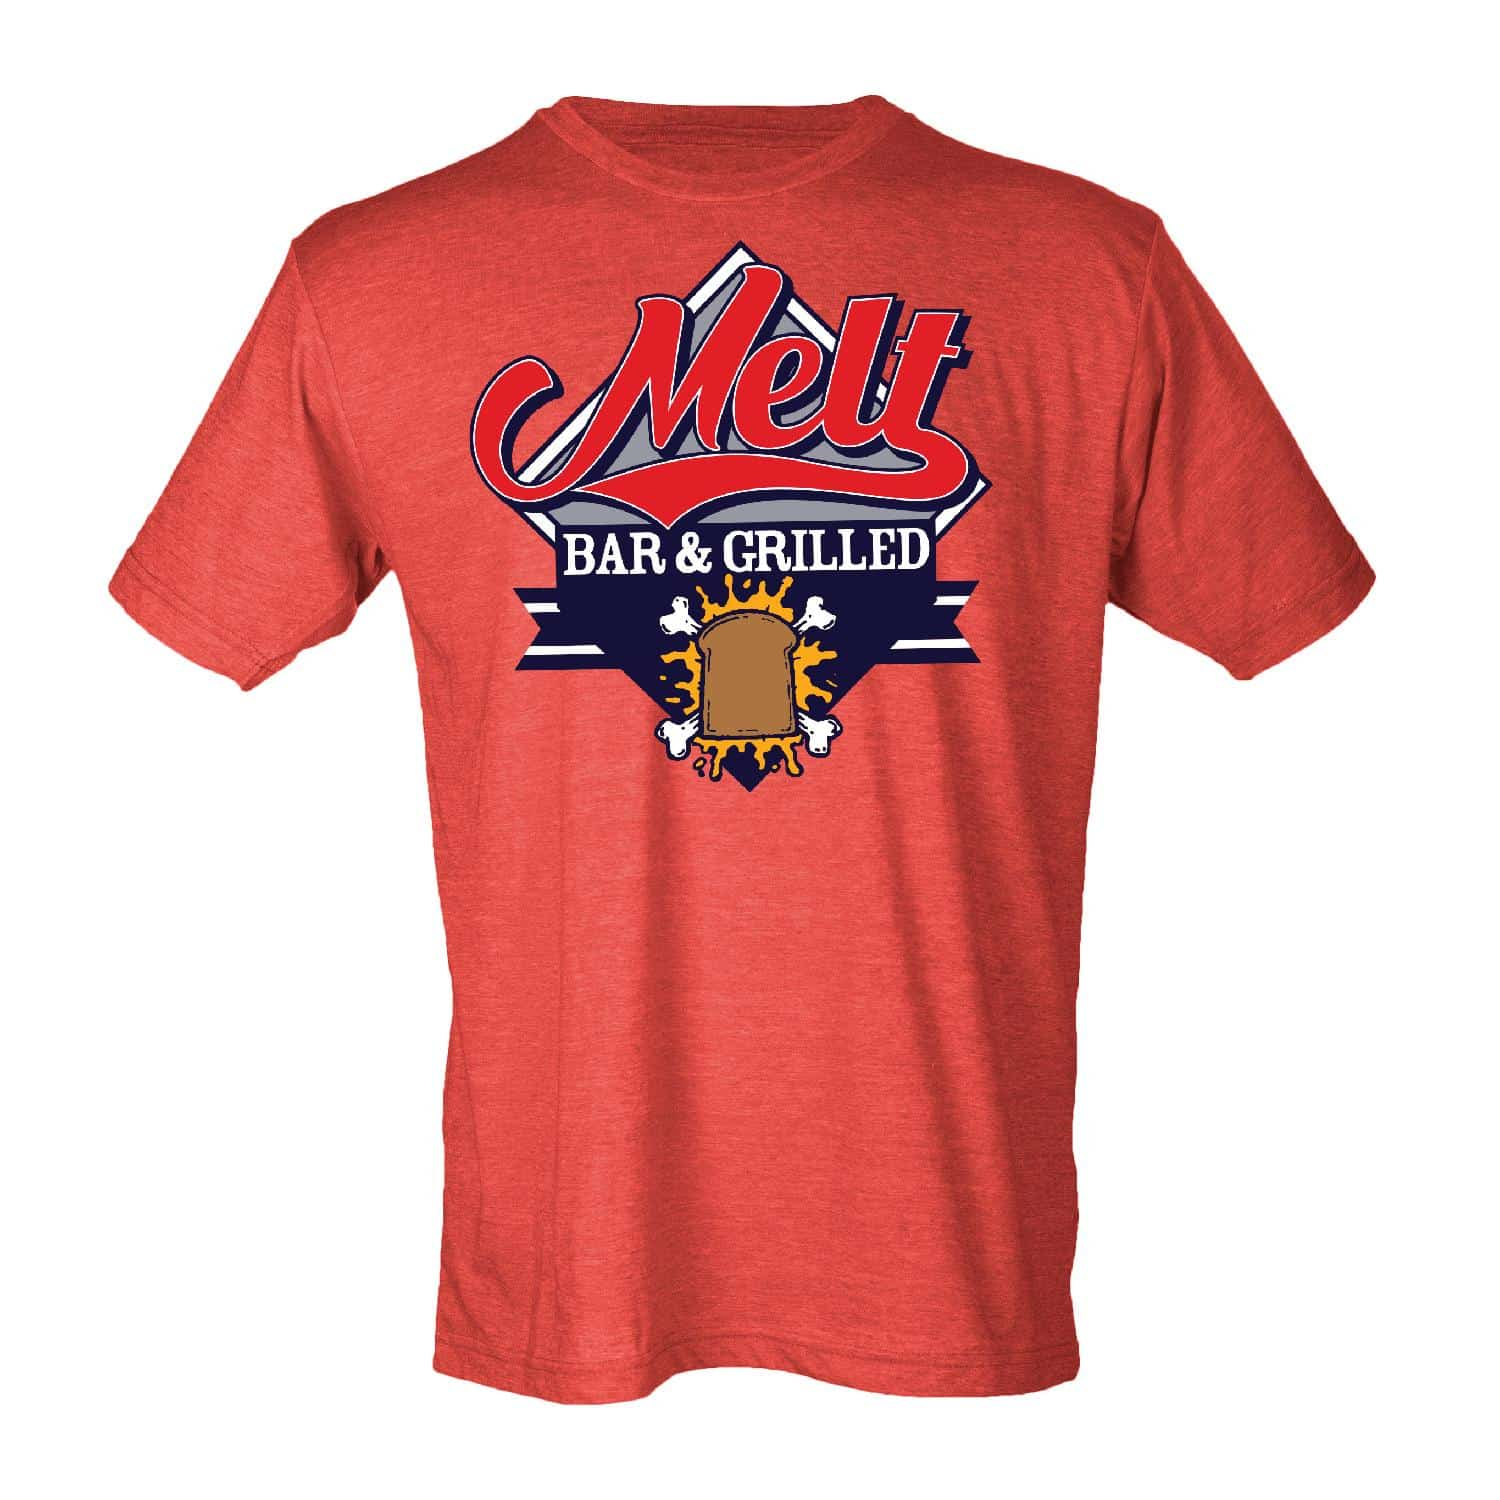 melt_baseball_shirts-page-001